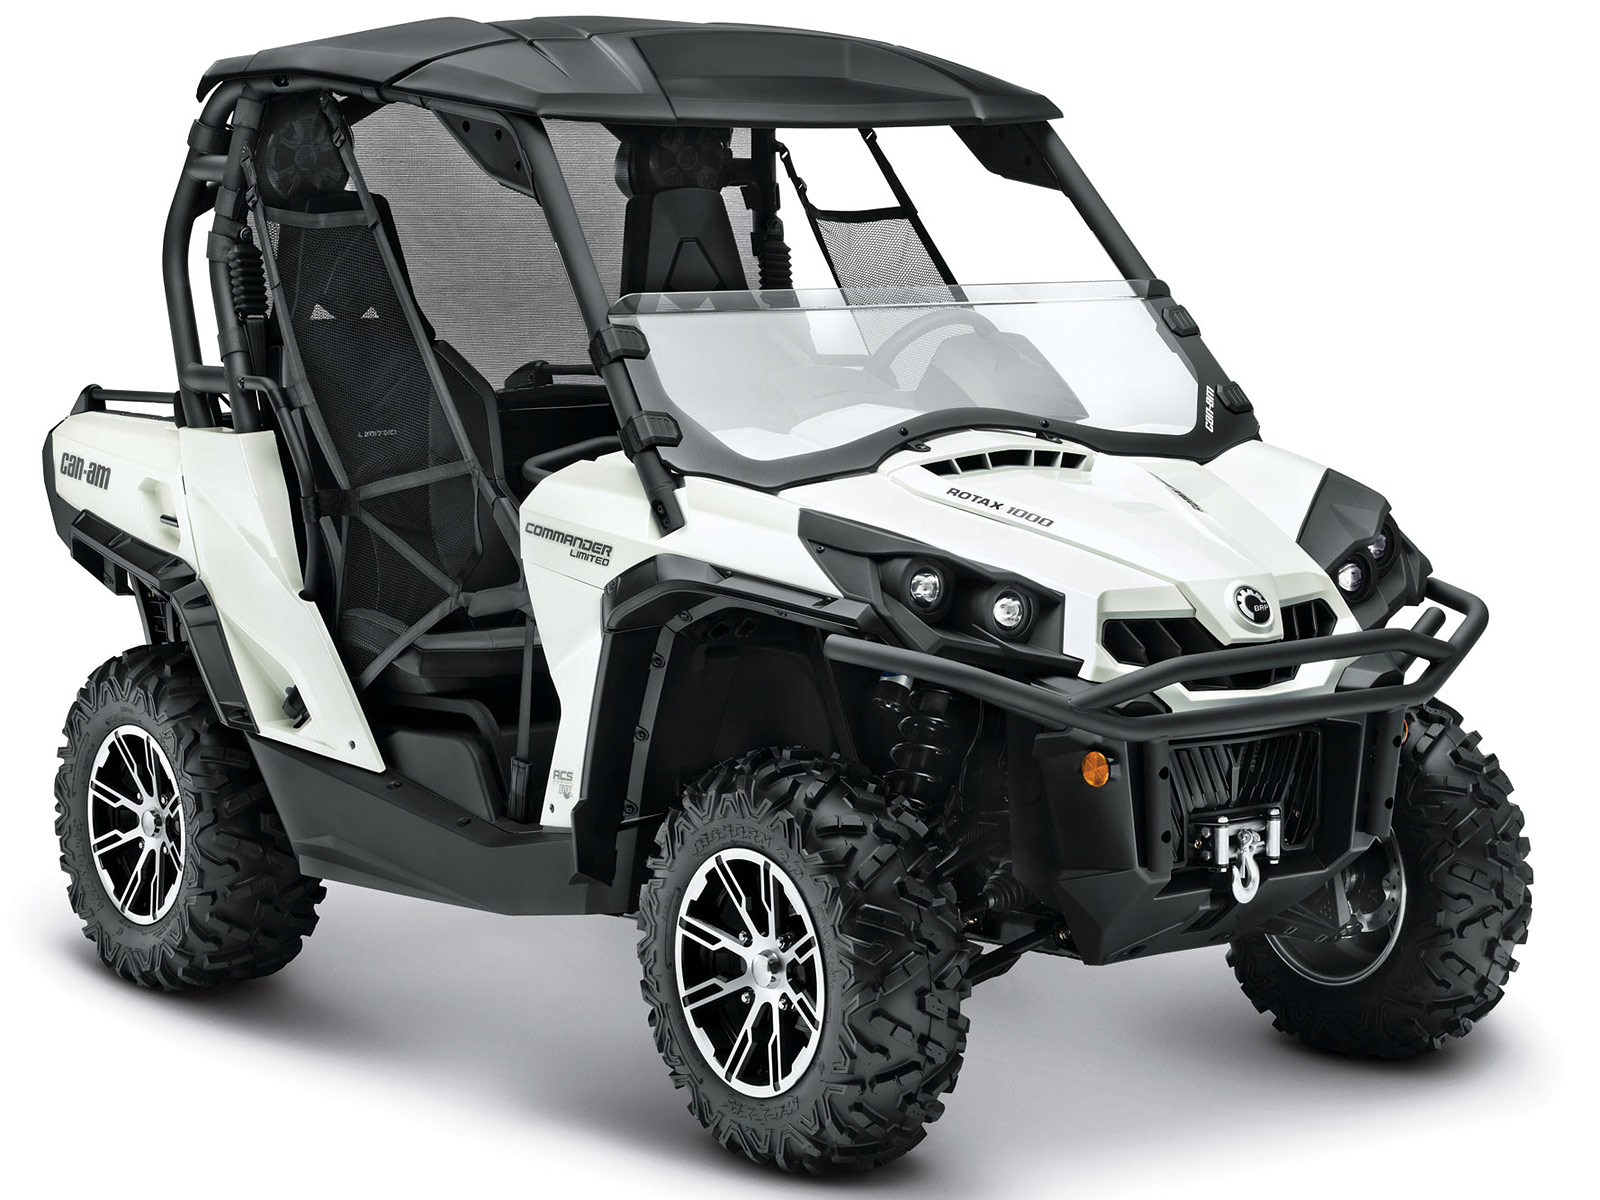 medium resolution of 2013 can am commander 1000 limited atv pictures 480x360 pixels